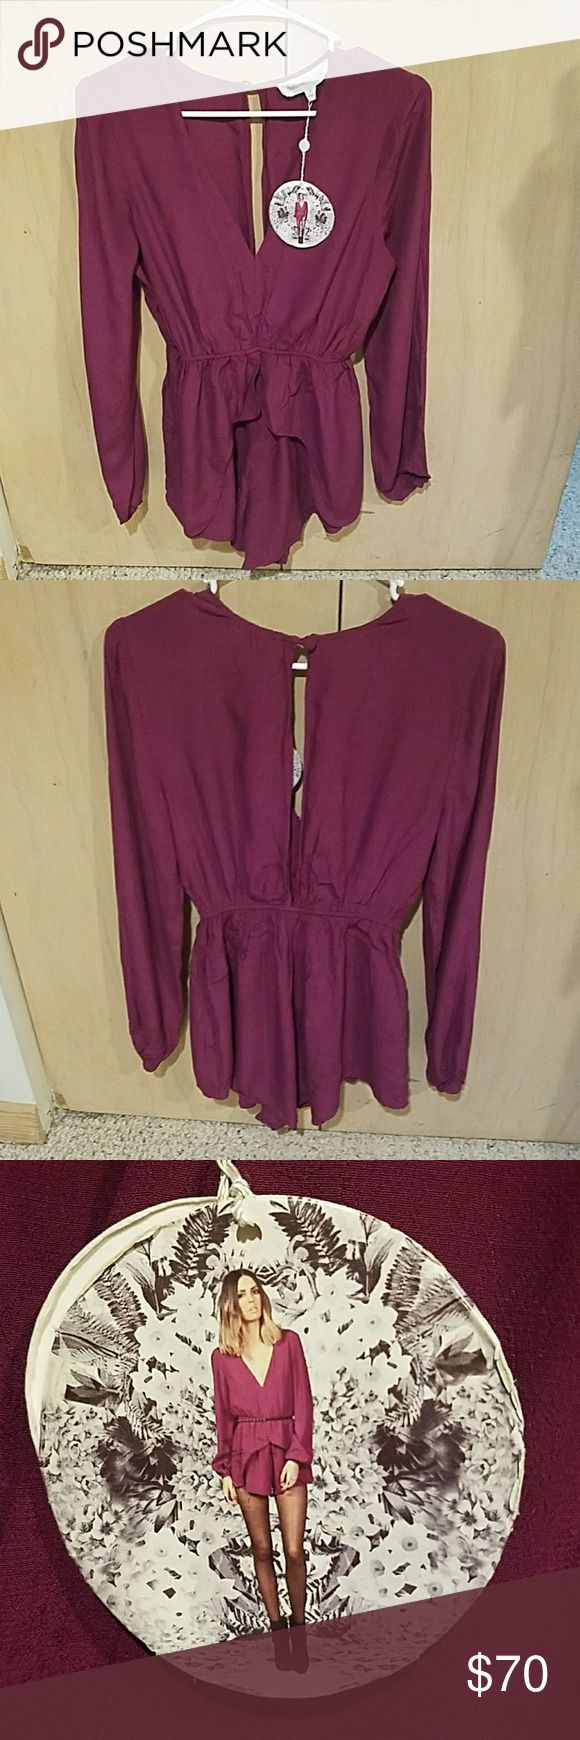 Finders Keepers playsuit stronger than me stronger than me playsuit, finders keepers new with tags.. very beautiful  Offers welcome.. Finders Keepers Dresses